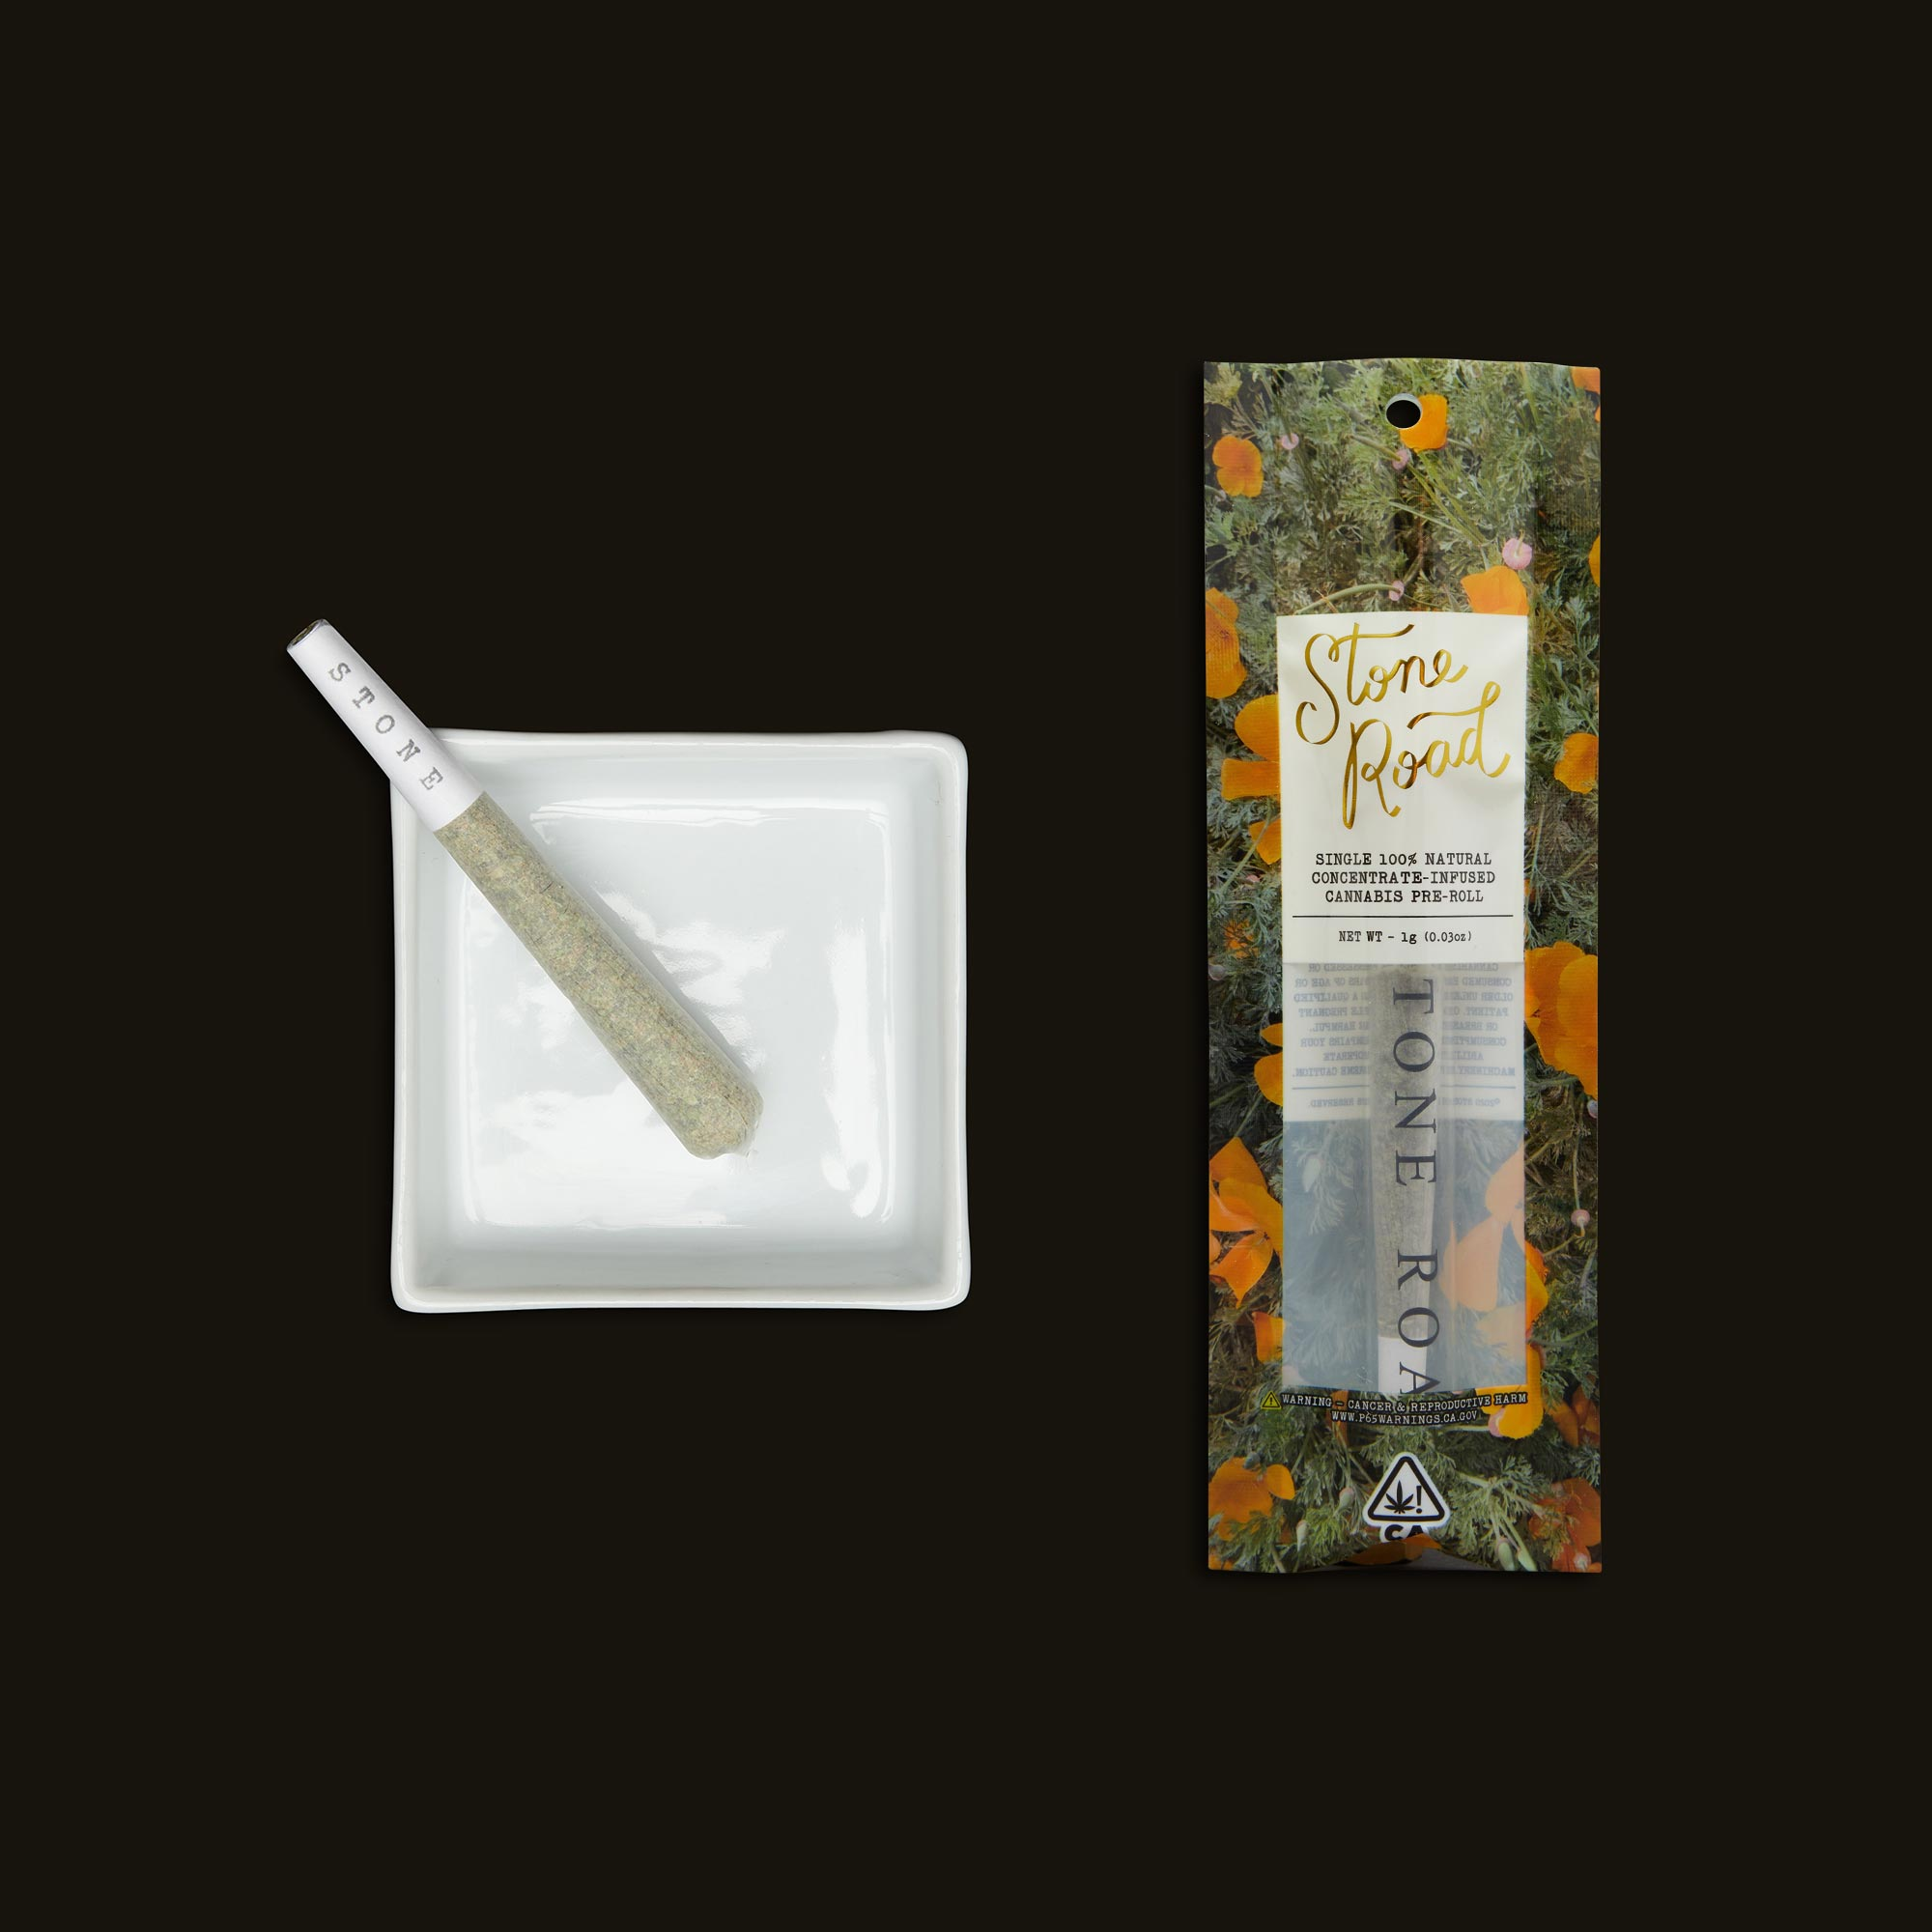 Stone Road Strawberry Banana Infused Pre-Roll